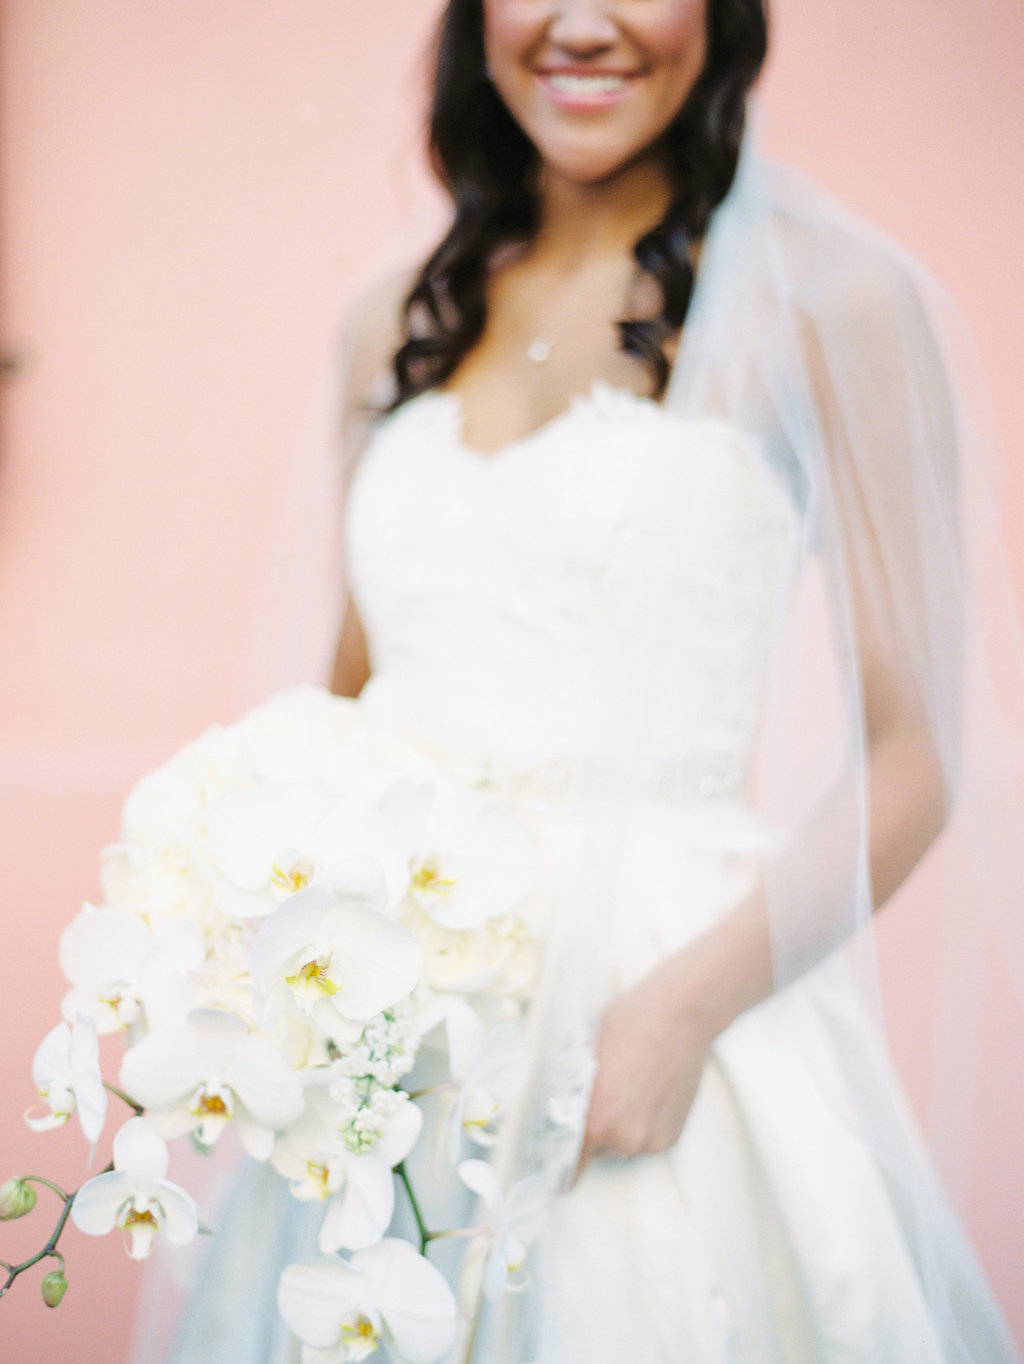 Close up photo of a bride in her wedding gown with a white orchid bouquet